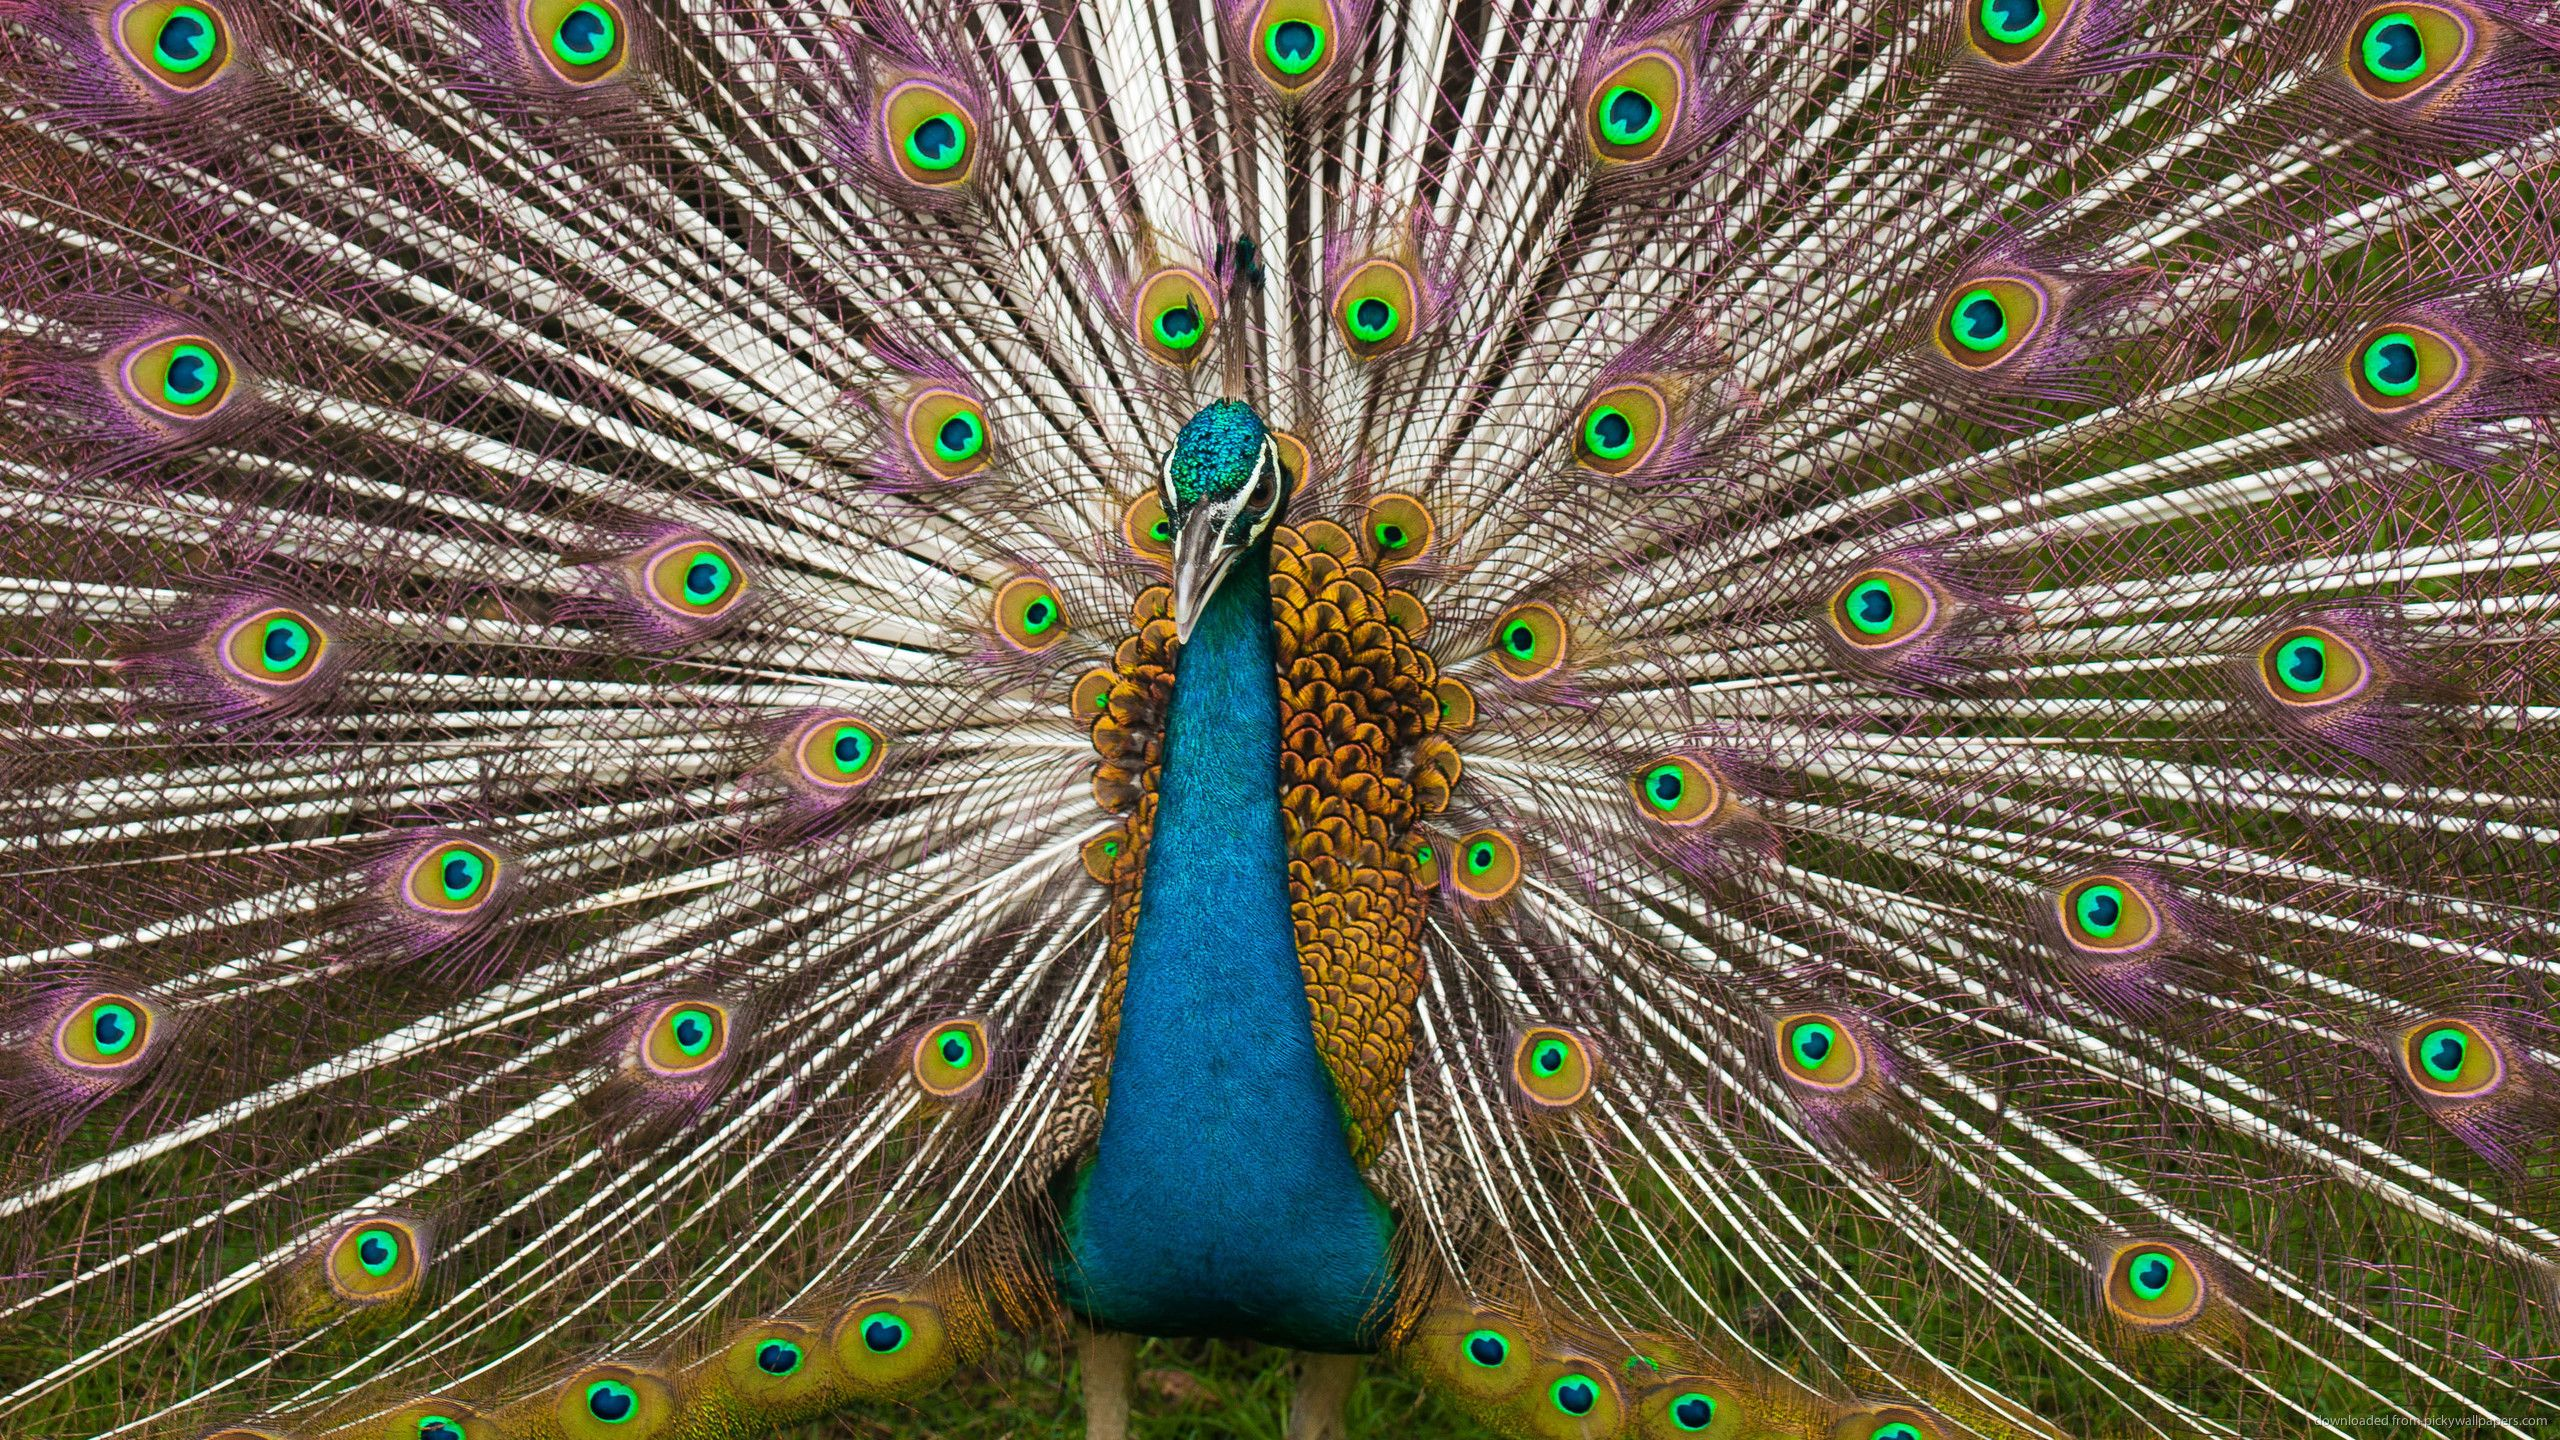 Indian Peacock Plumage for 2560x1440